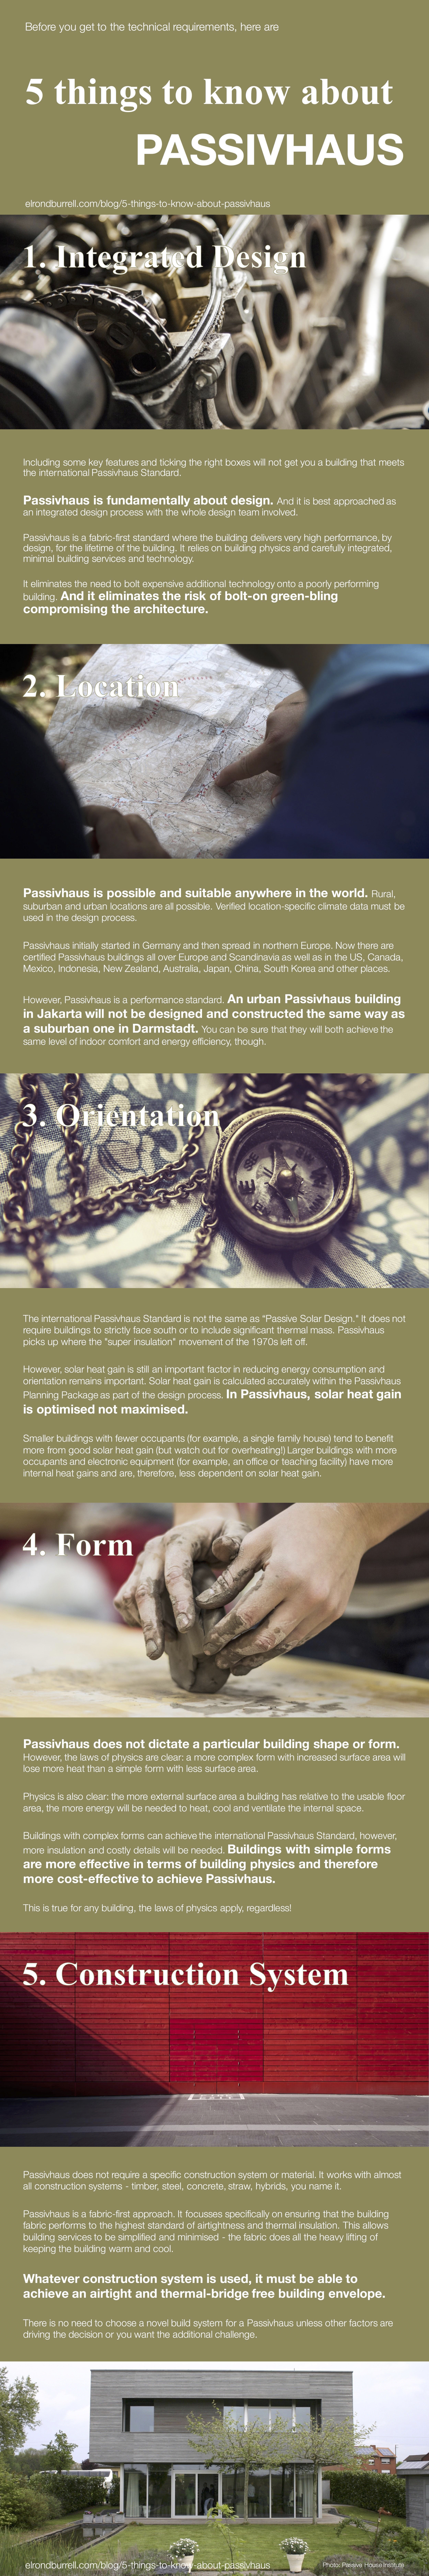 5 things to know about Passivhaus Infographic